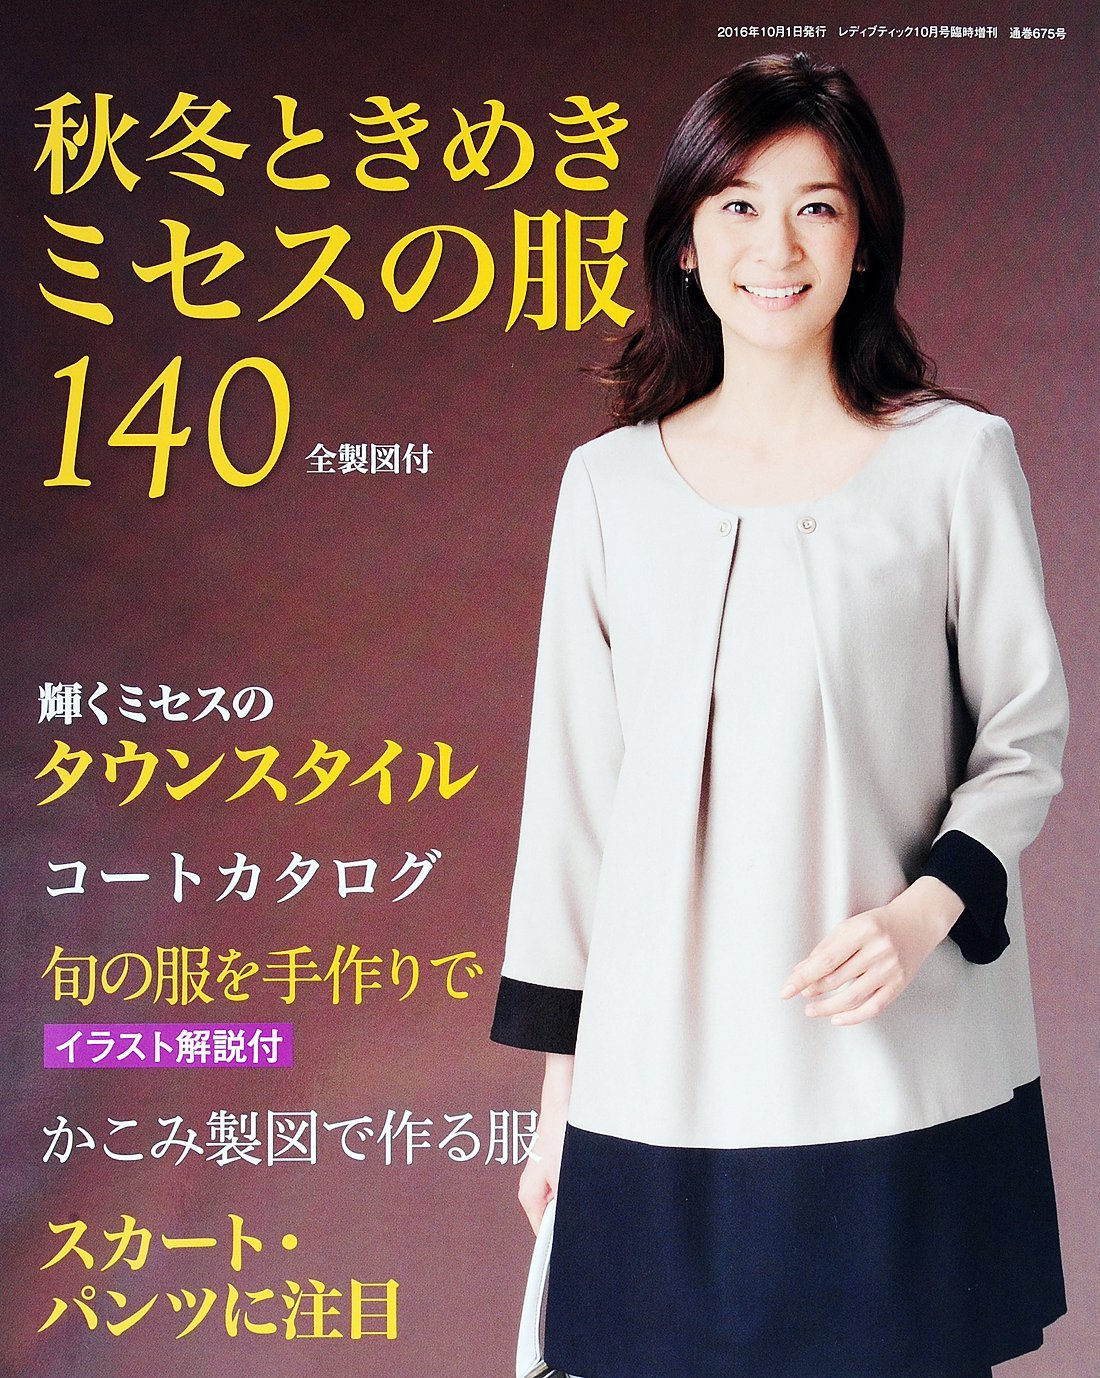 Mrs. clothes 140 Fall Special 2016